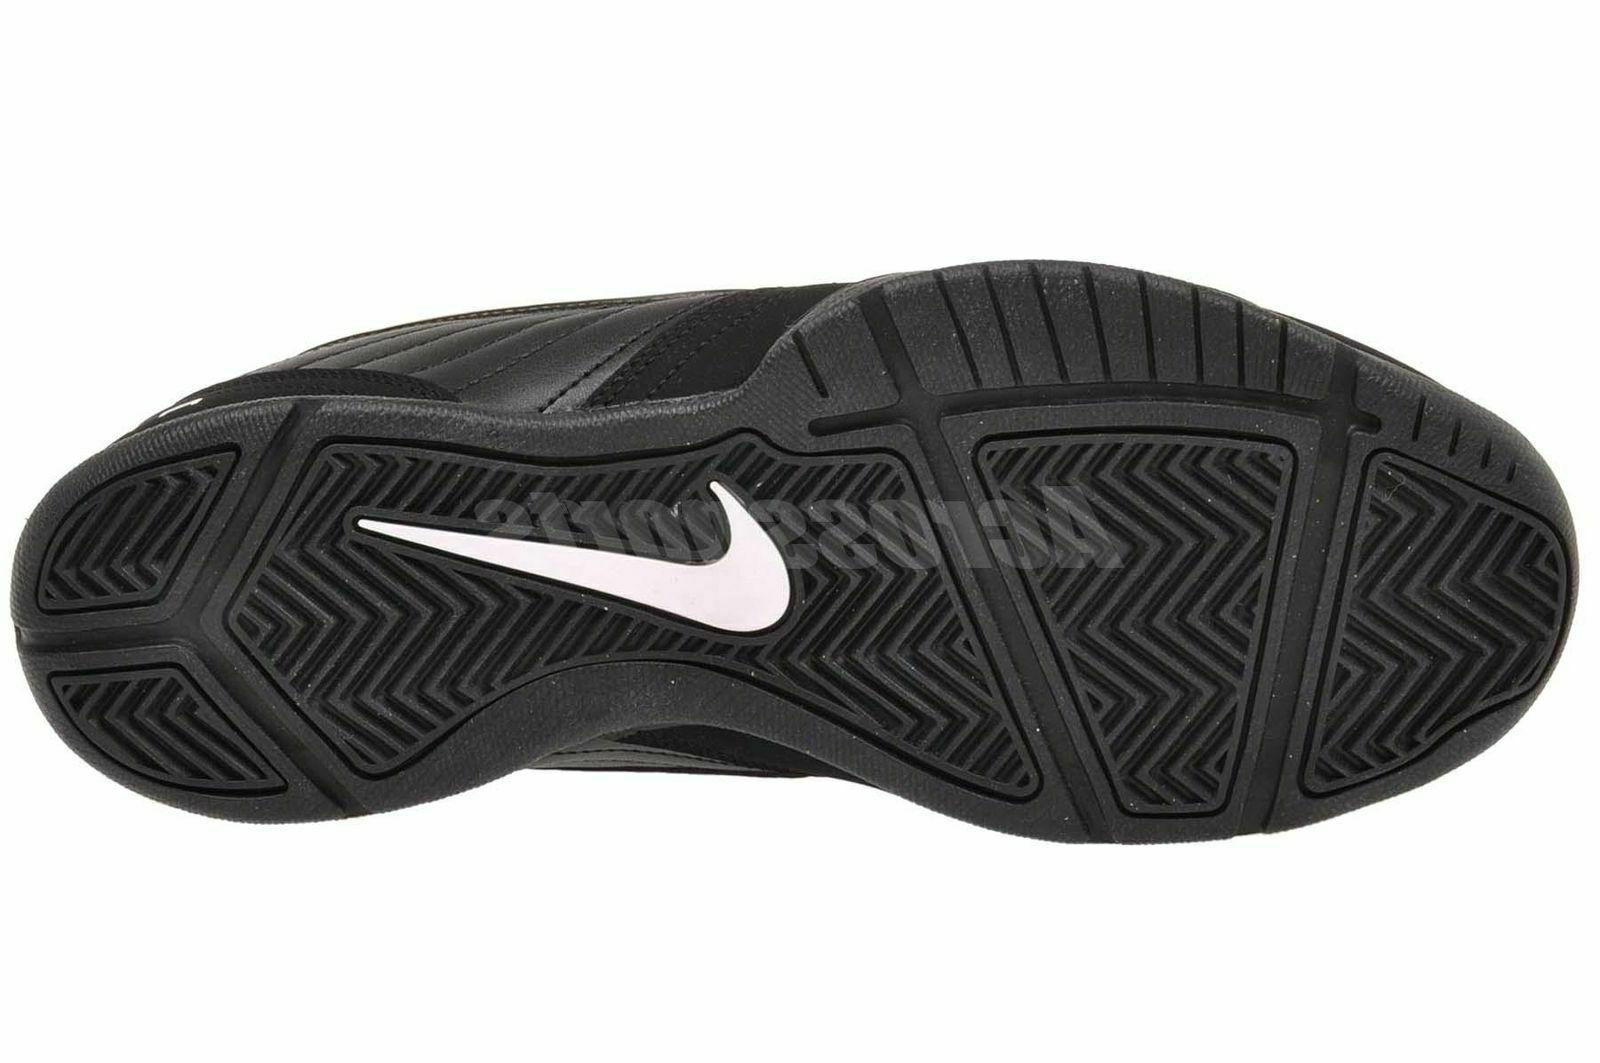 Nike Air Baseline Men's Black 386240 001